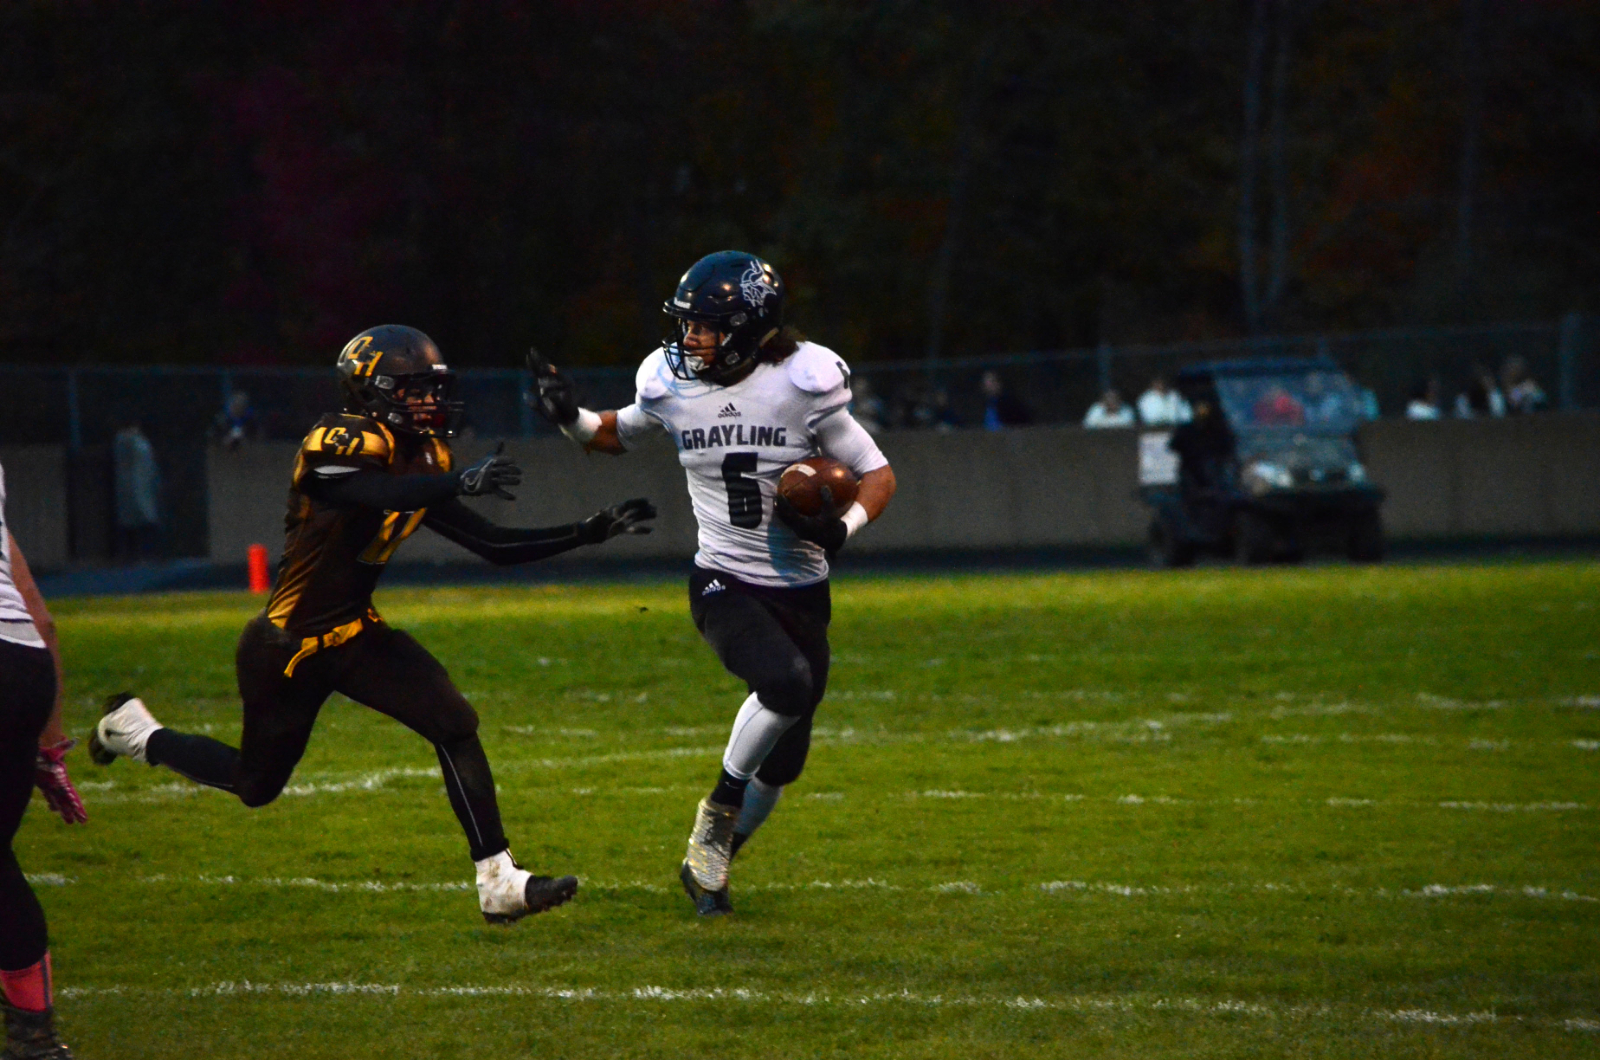 Nick Hunter named 1st Team All-State by the Detroit Free Press